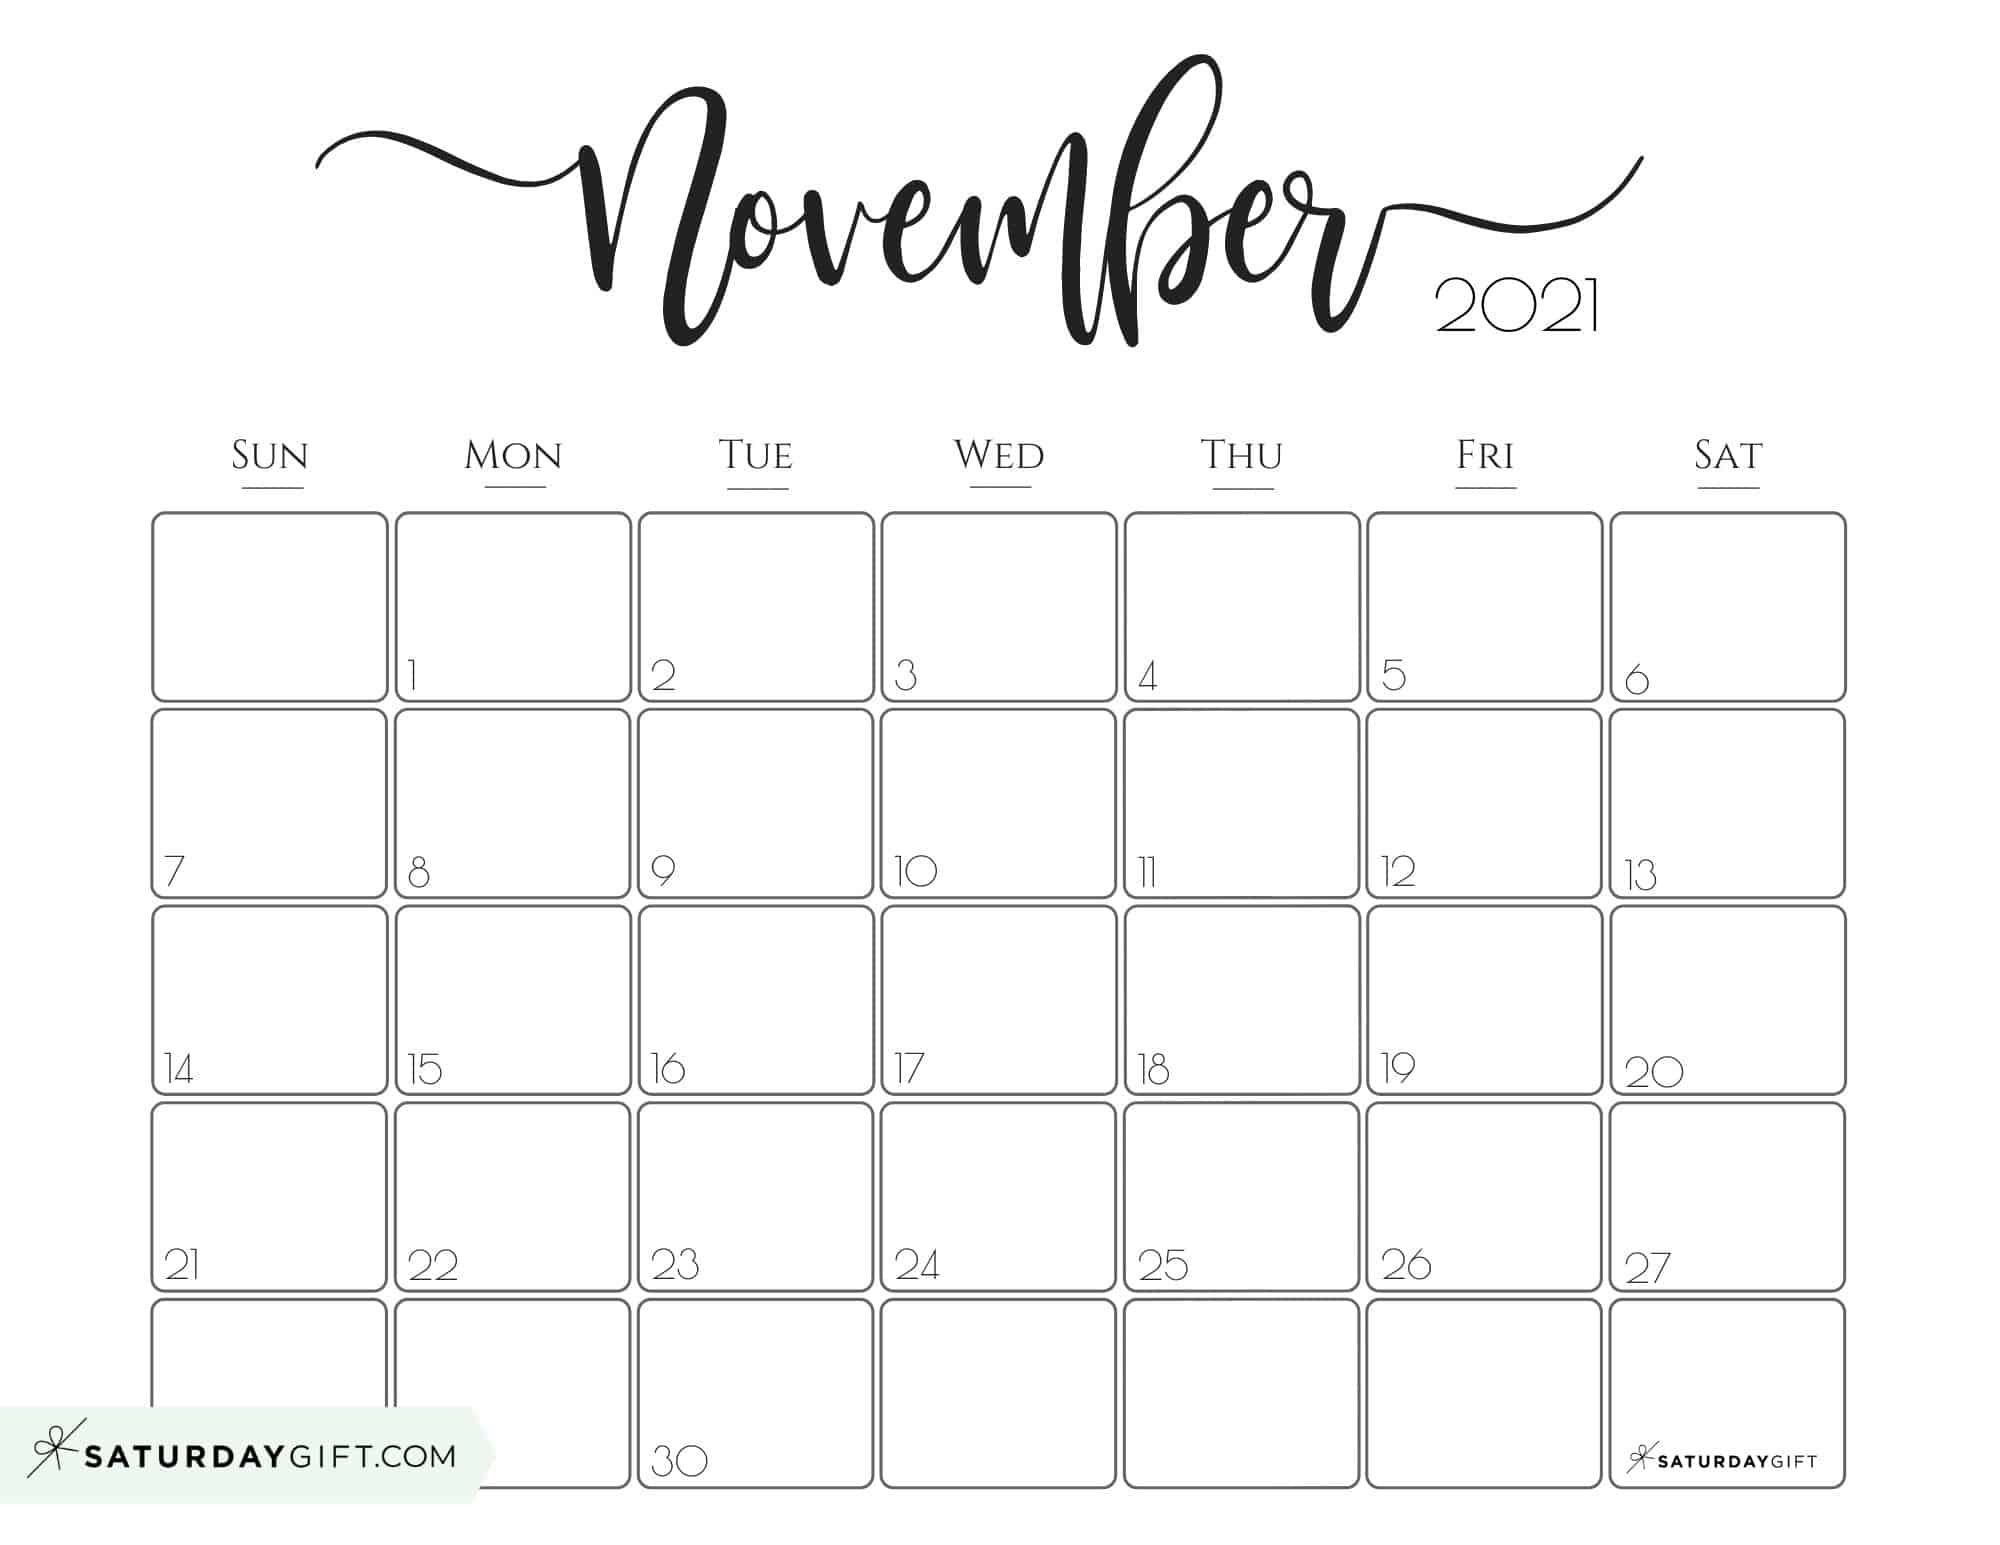 November 2021 Calendar To Print | Calendar 2021 within Malayalam Calendar 2021 November